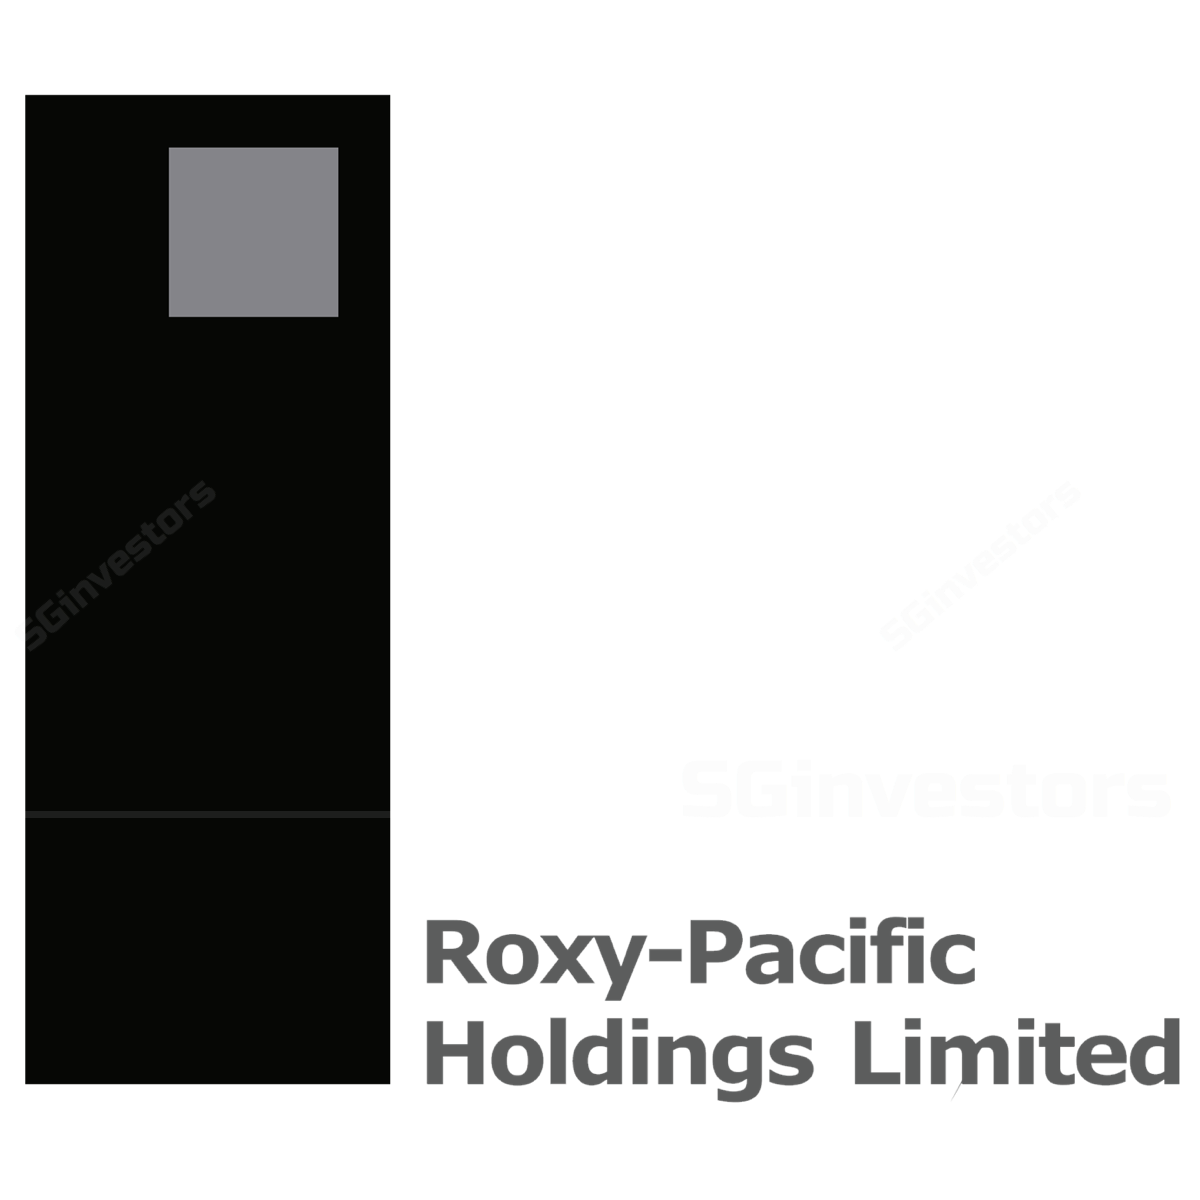 Roxy-Pacific Holdings - OCBC Investment Research 2018-08-01: Between A Rock And A Hard Place